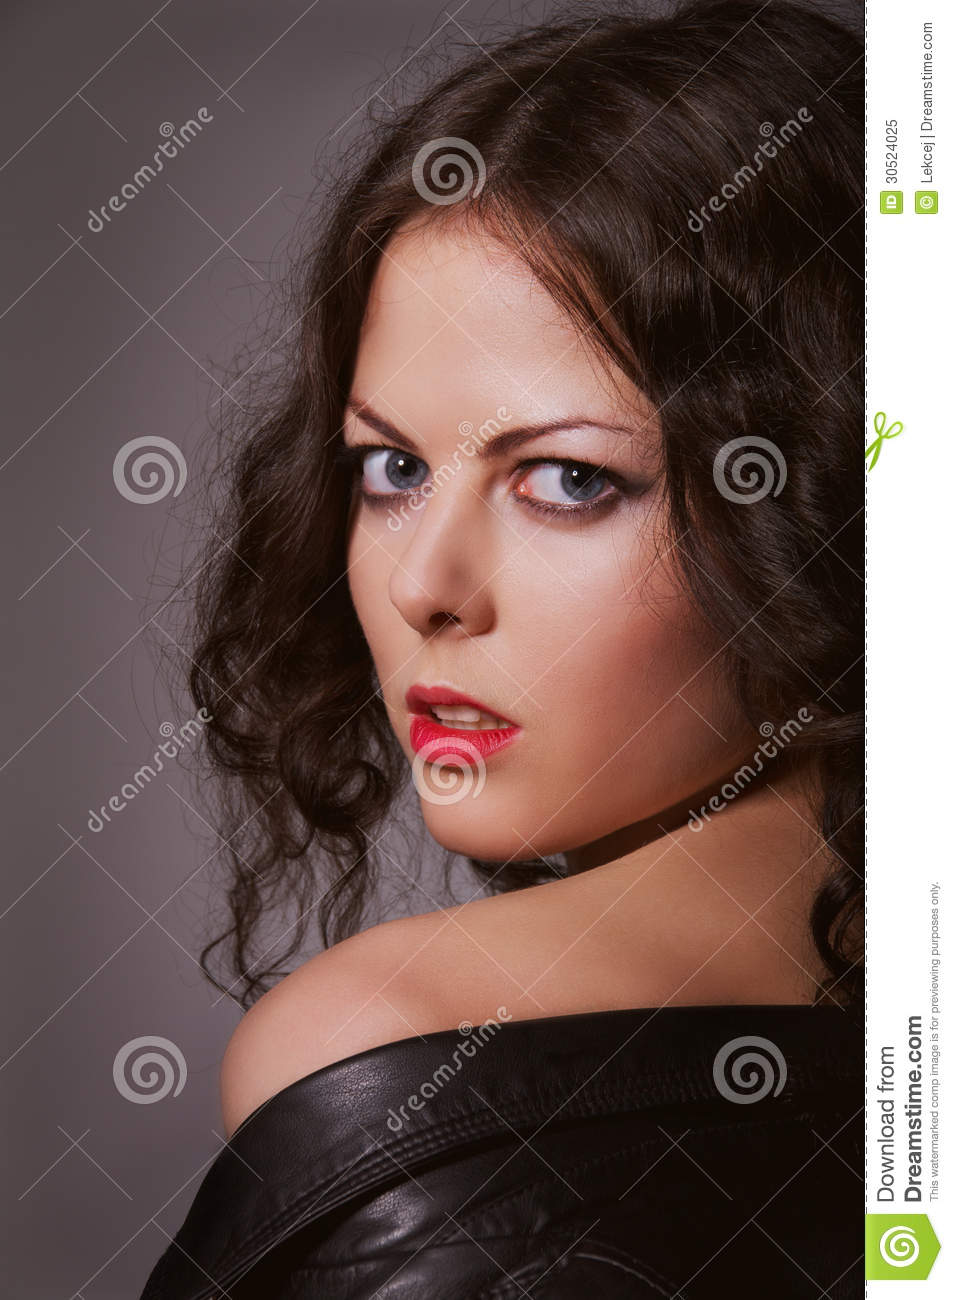 dc1952df8 Pretty curly brunette stock image. Image of femininity - 30524025